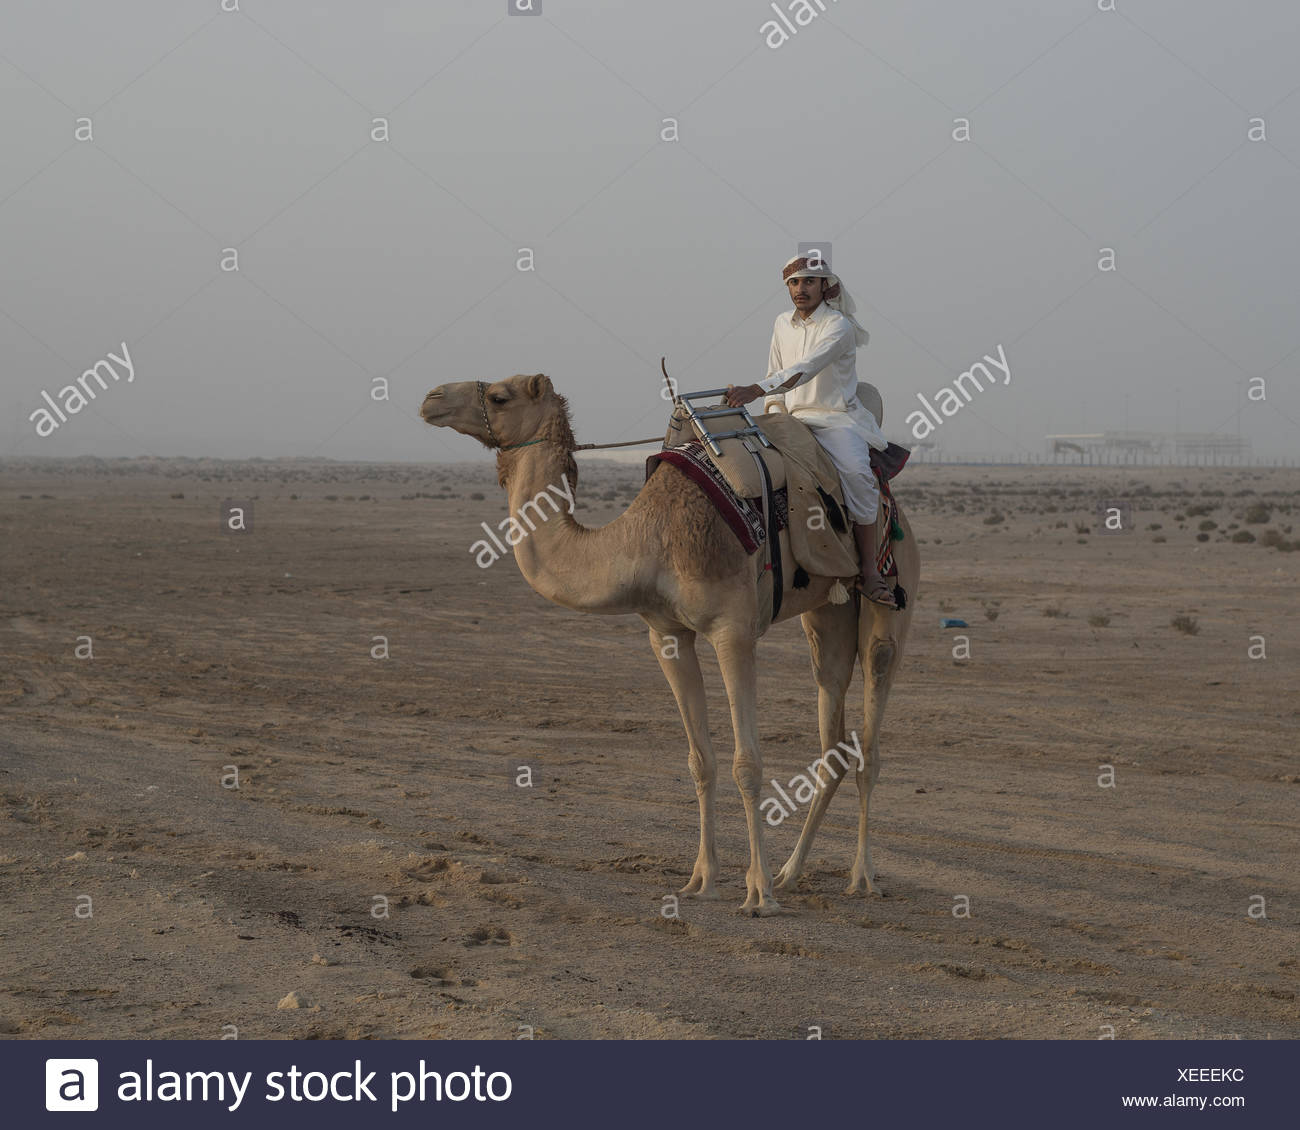 An Arab man mounted on a camel prepares for the day's hunt during the Al Galayel Hunting Festival in Qatar. The annual event pits teams of hunters against one another using traditional Arab  hunting techniques. - Stock Image